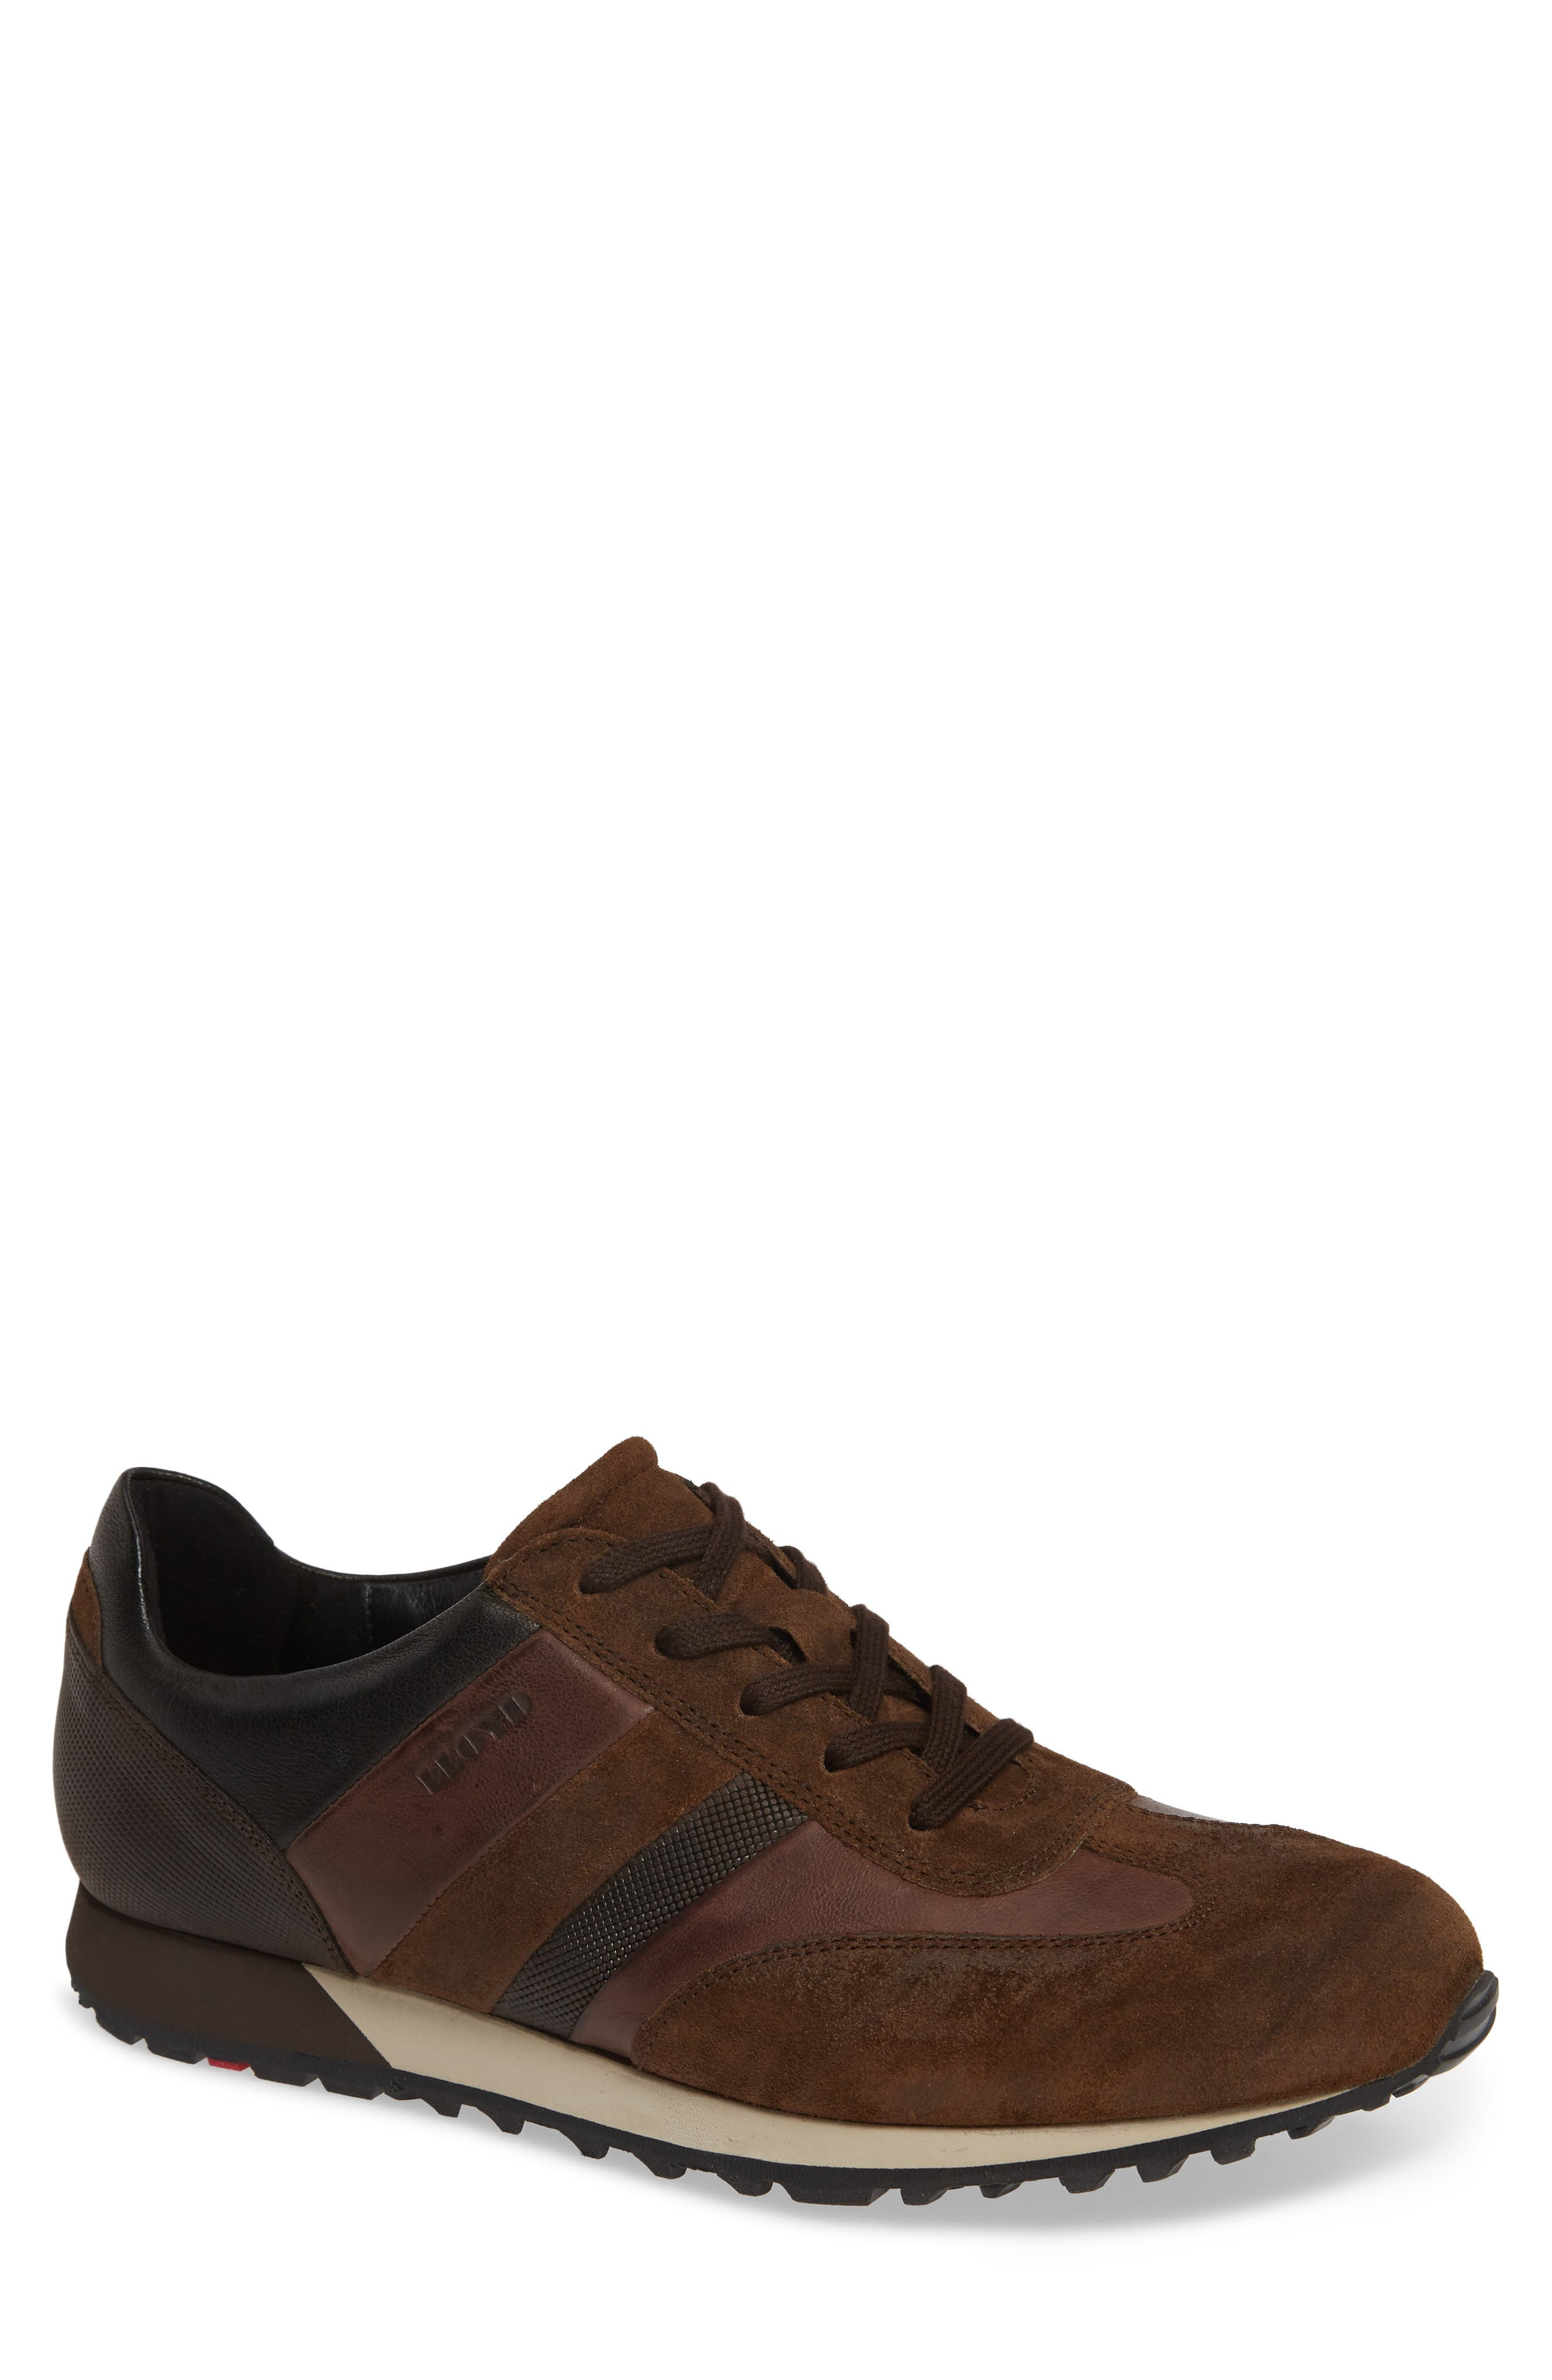 Agon Sneaker,                         Main,                         color, CHOCOLATE SUEDE